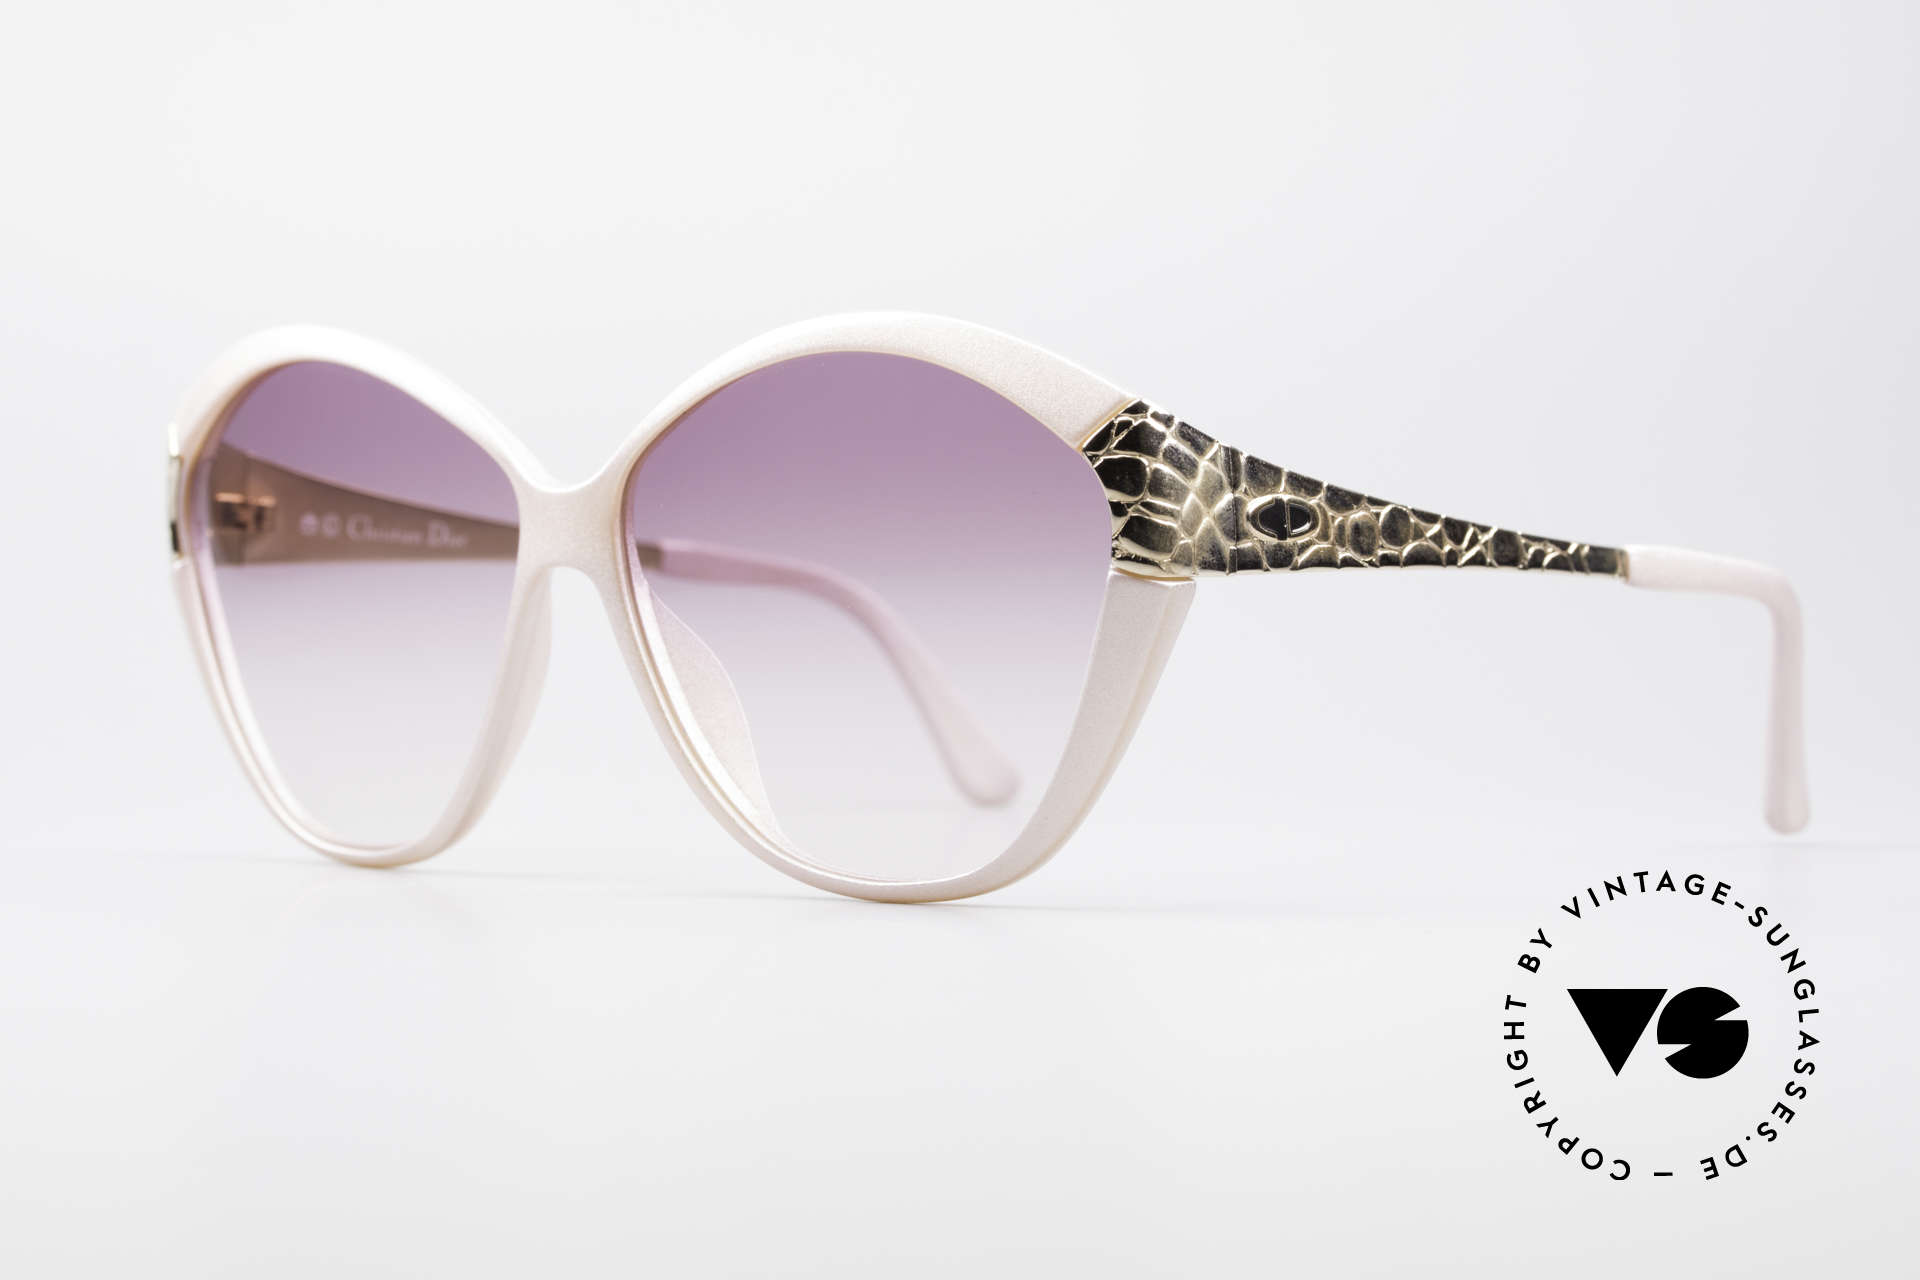 Christian Dior 2319 Pink Ladies Designer Shades, GOLD-PLATED temples with 'croco' pattern, Made for Women